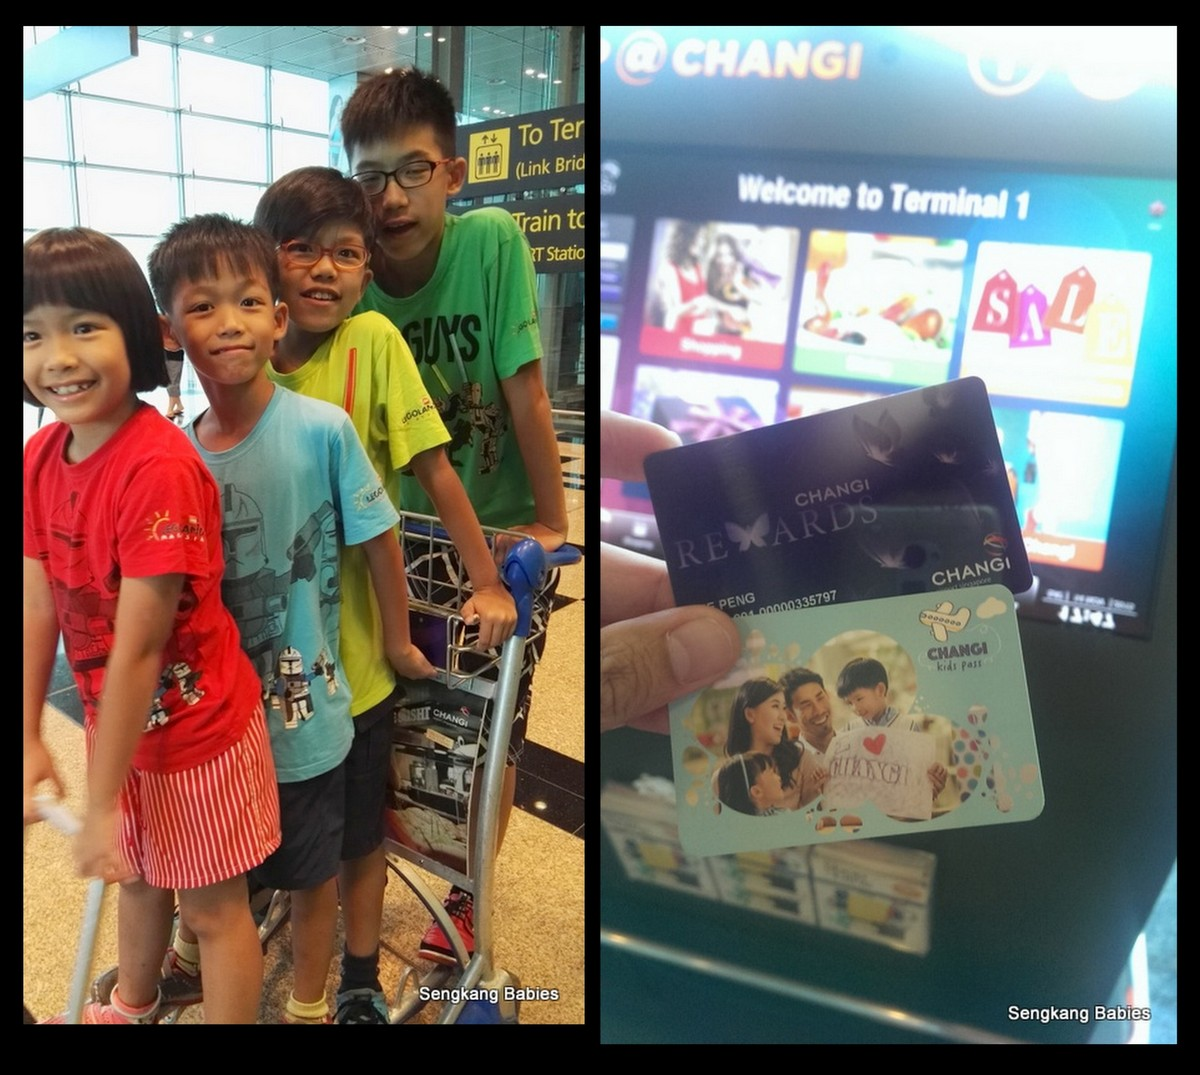 changi Airport rewards